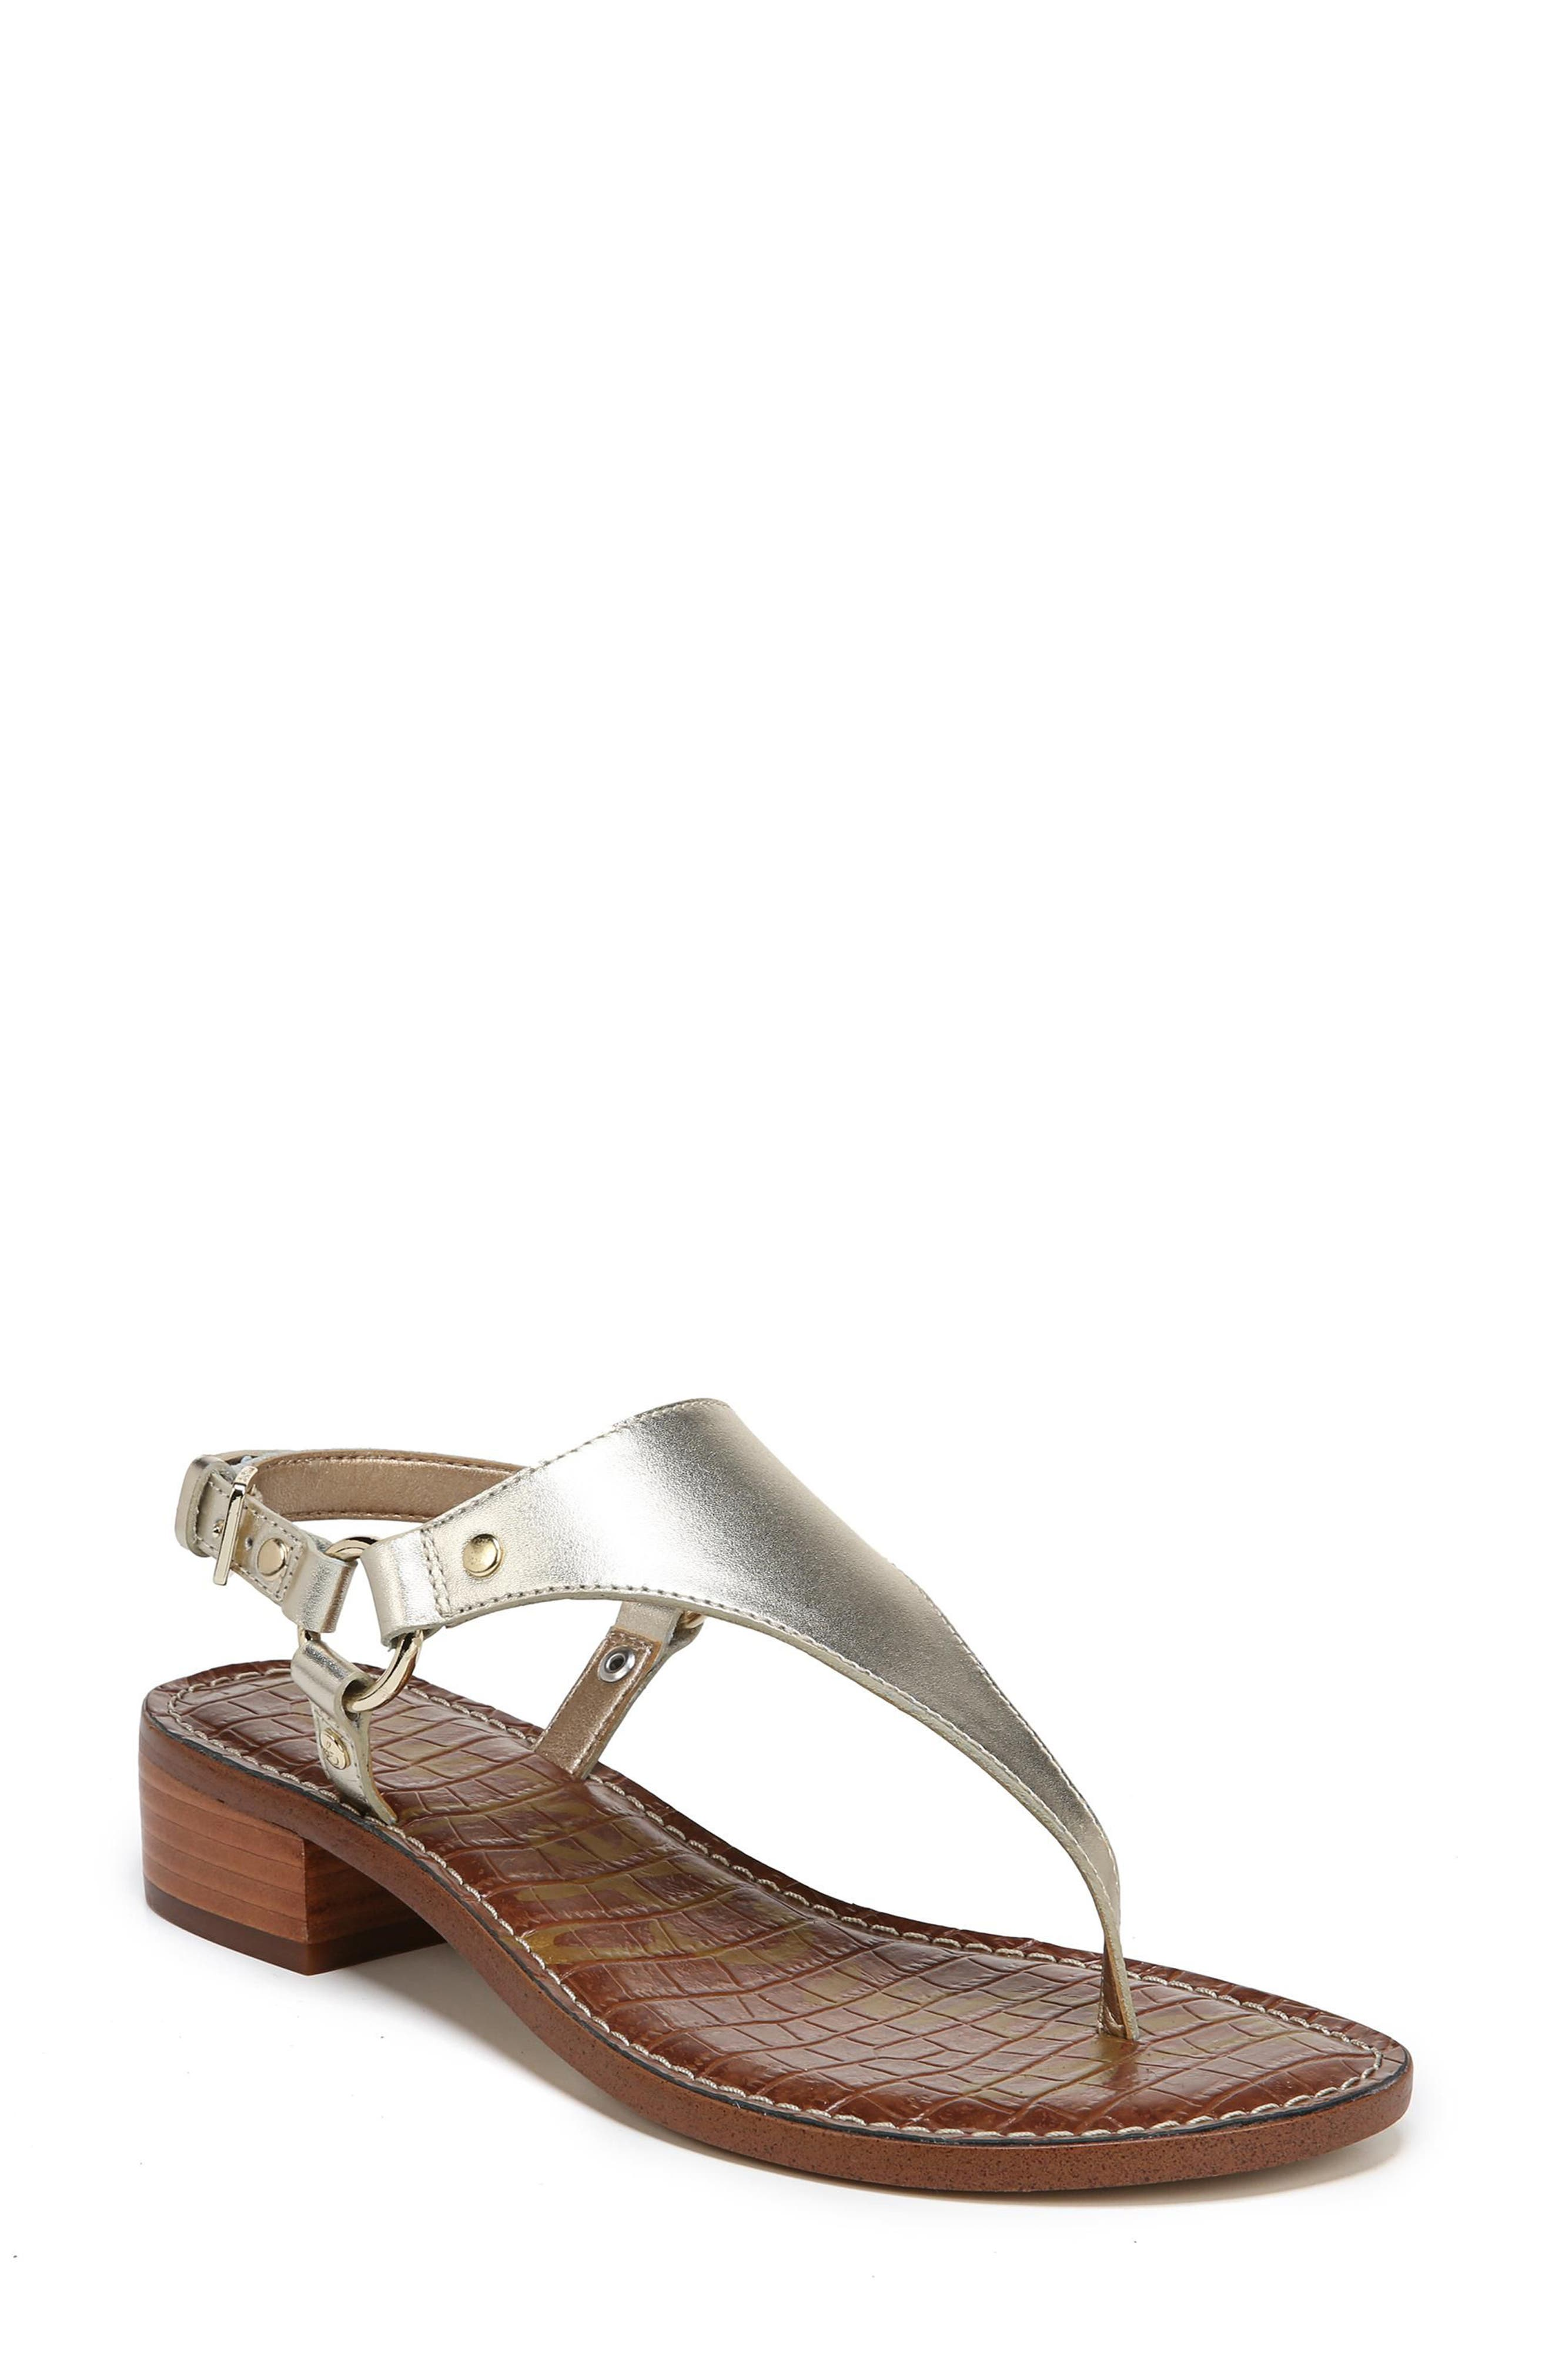 Jude Sandal,                             Main thumbnail 1, color,                             Molten Gold Leather